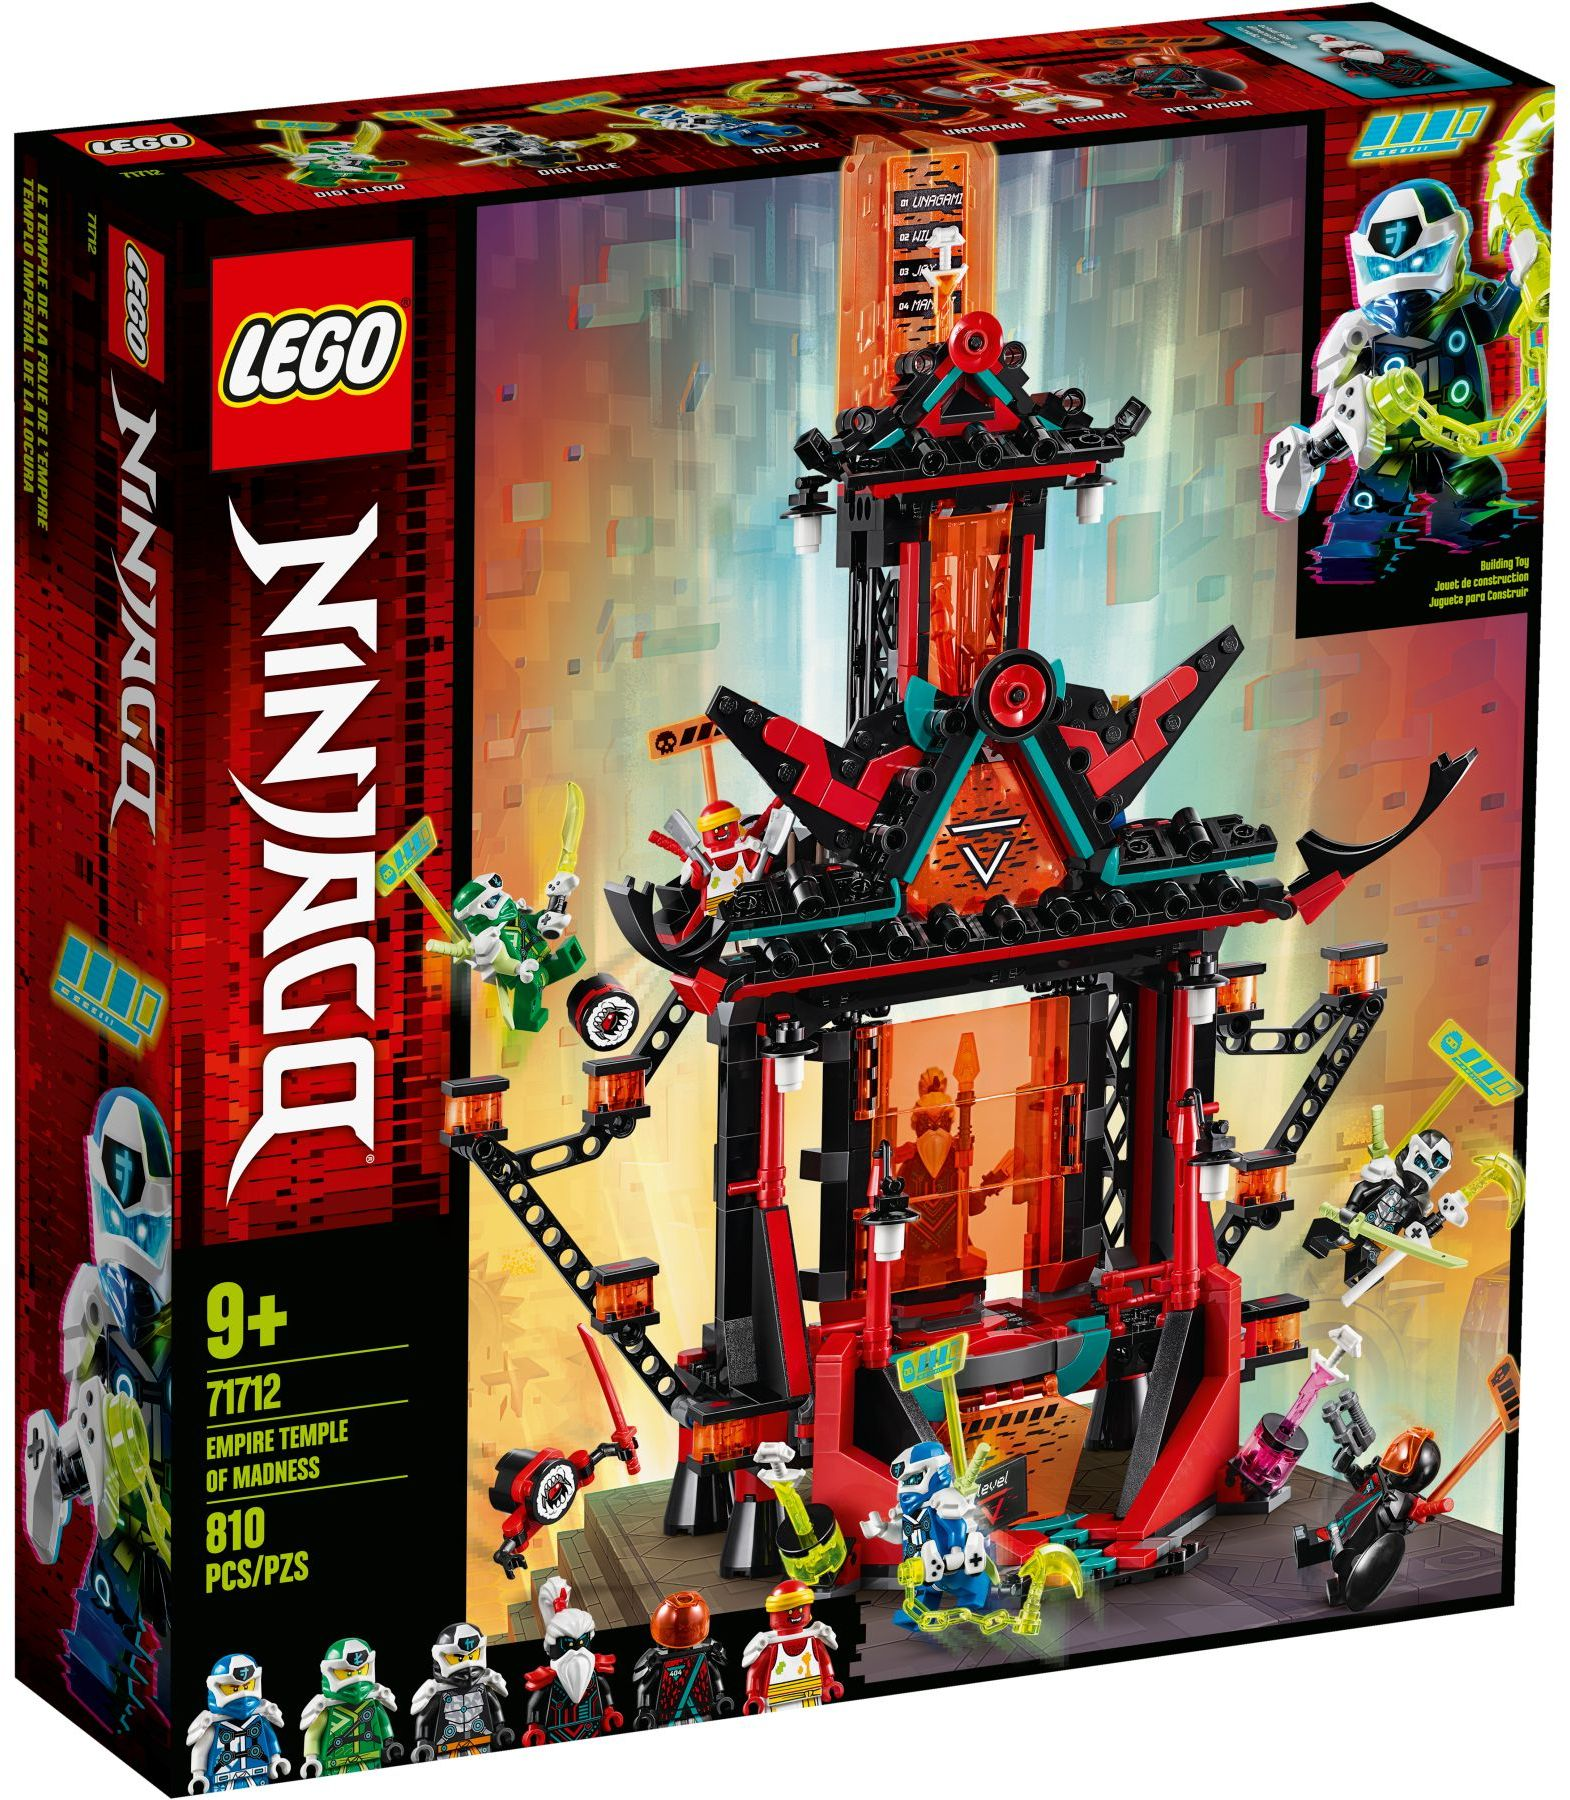 71712 Empire Temple of Madness